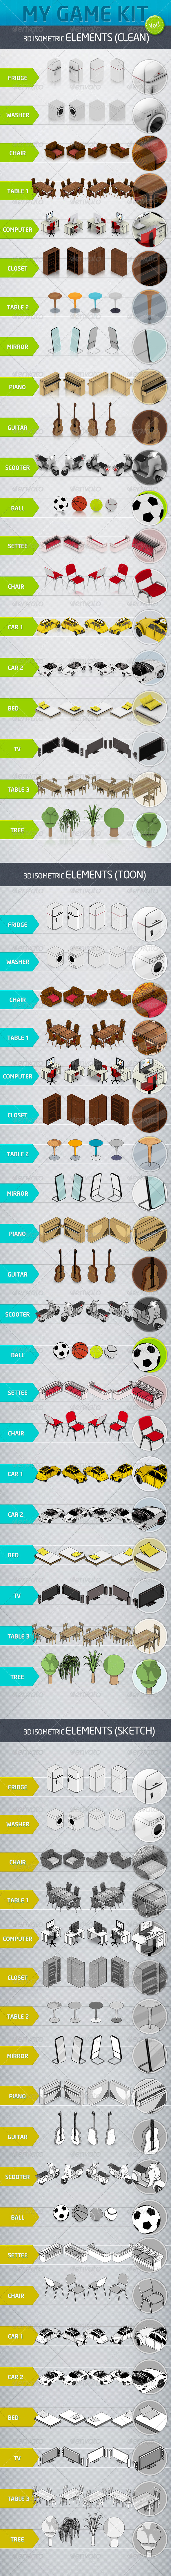 Mygame 3D Isometric Kit Vol.1 - Objects 3D Renders